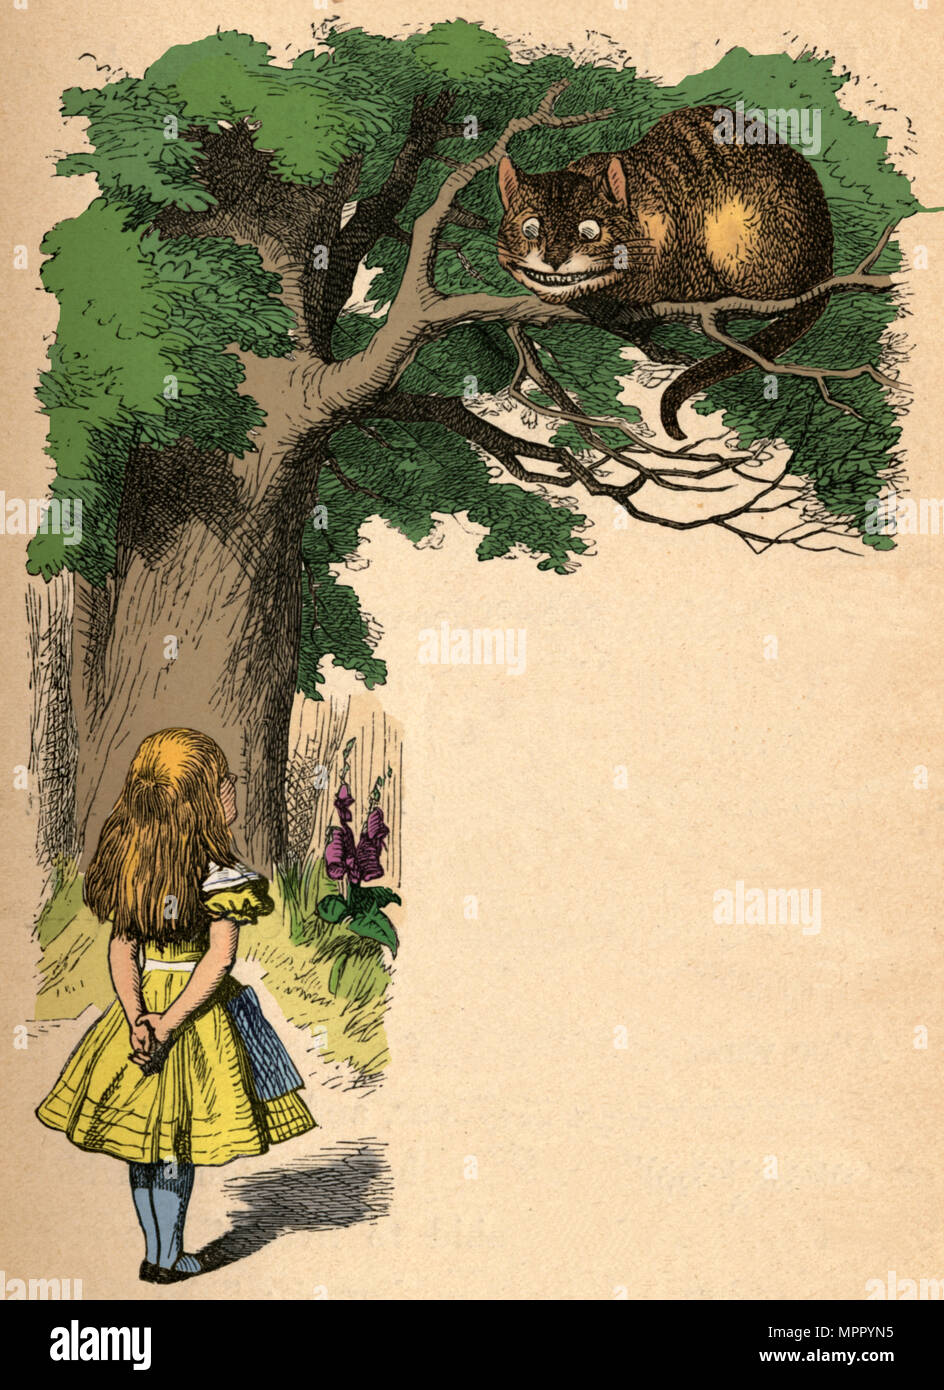 'Alice and the Cheshire Cat', 1889. Artist: John Tenniel. - Stock Image